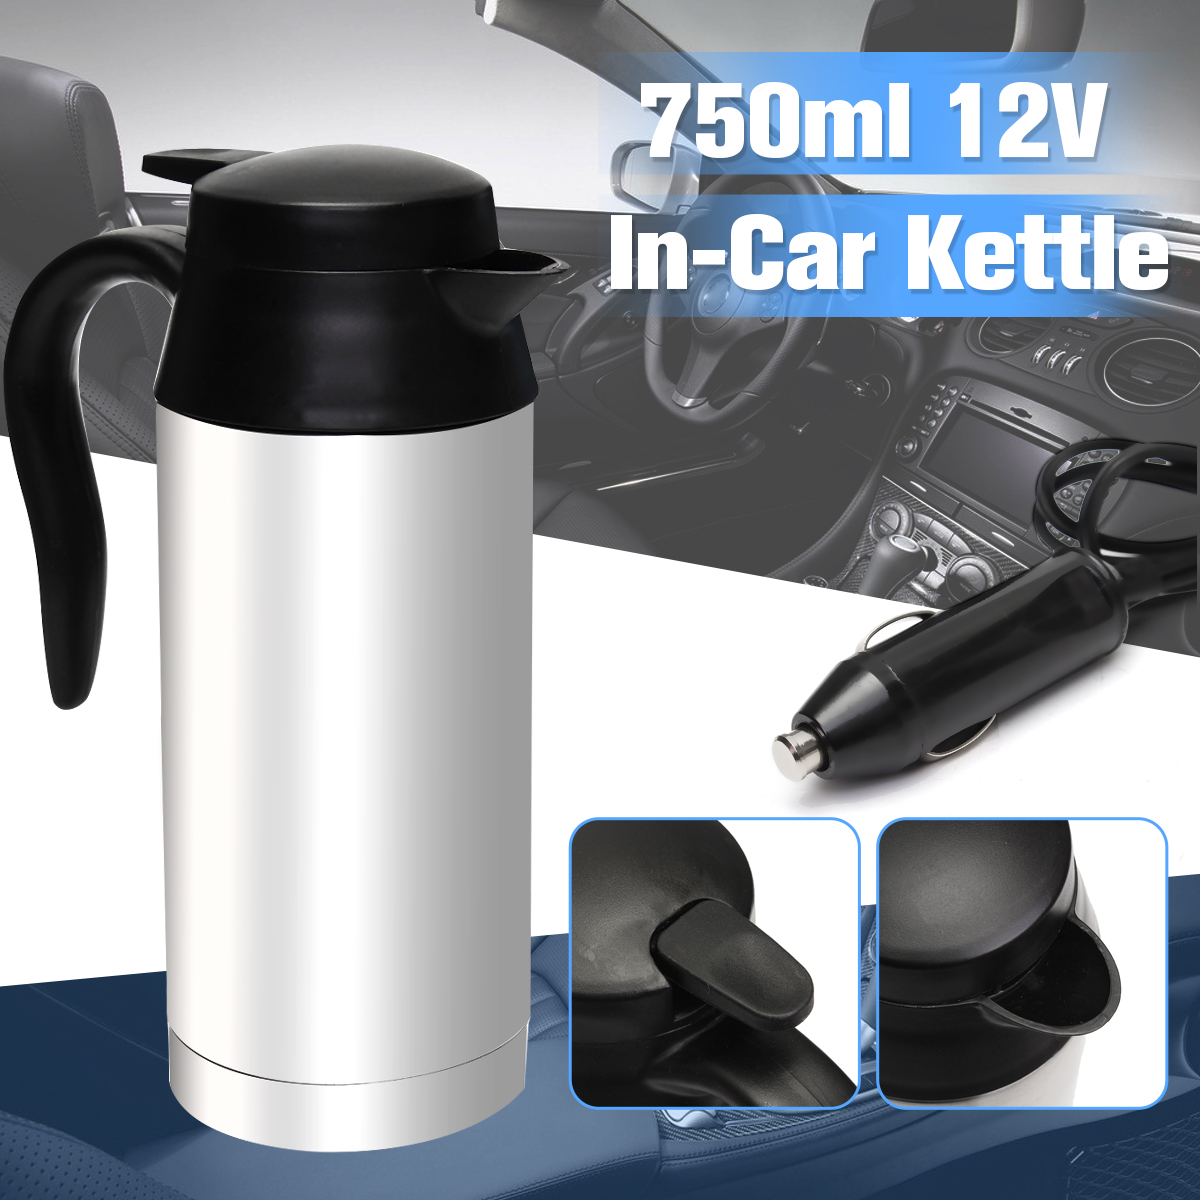 Stainless Steel 12V Electric Kettle 750ml In-Car Travel Trip Coffee Tea Heated Mug Motor Hot Water For Car Or Truck Use